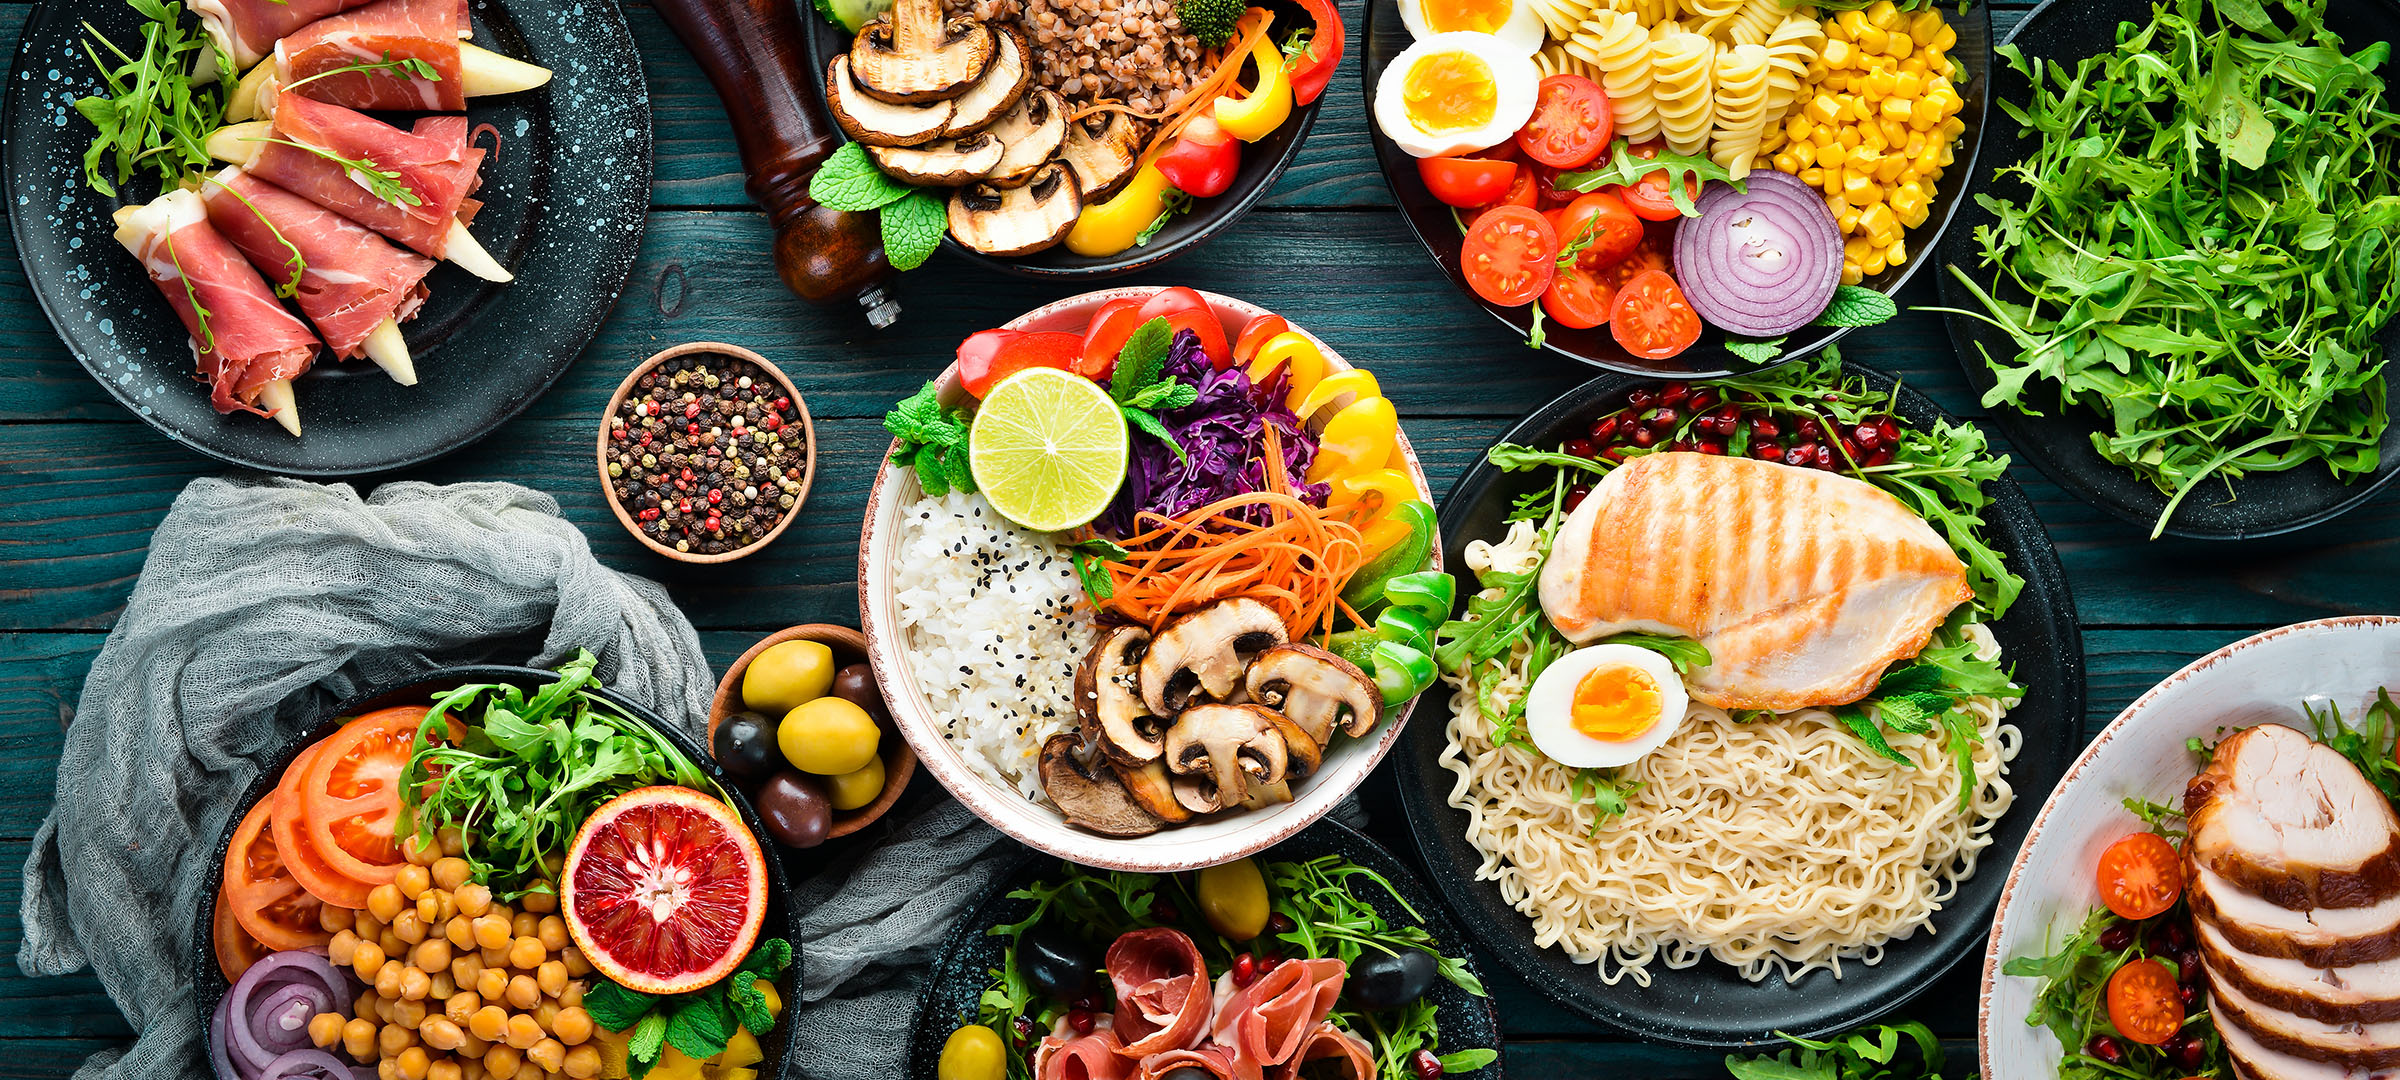 Assortment of healthy food dishes. Top view. Free space for your text.